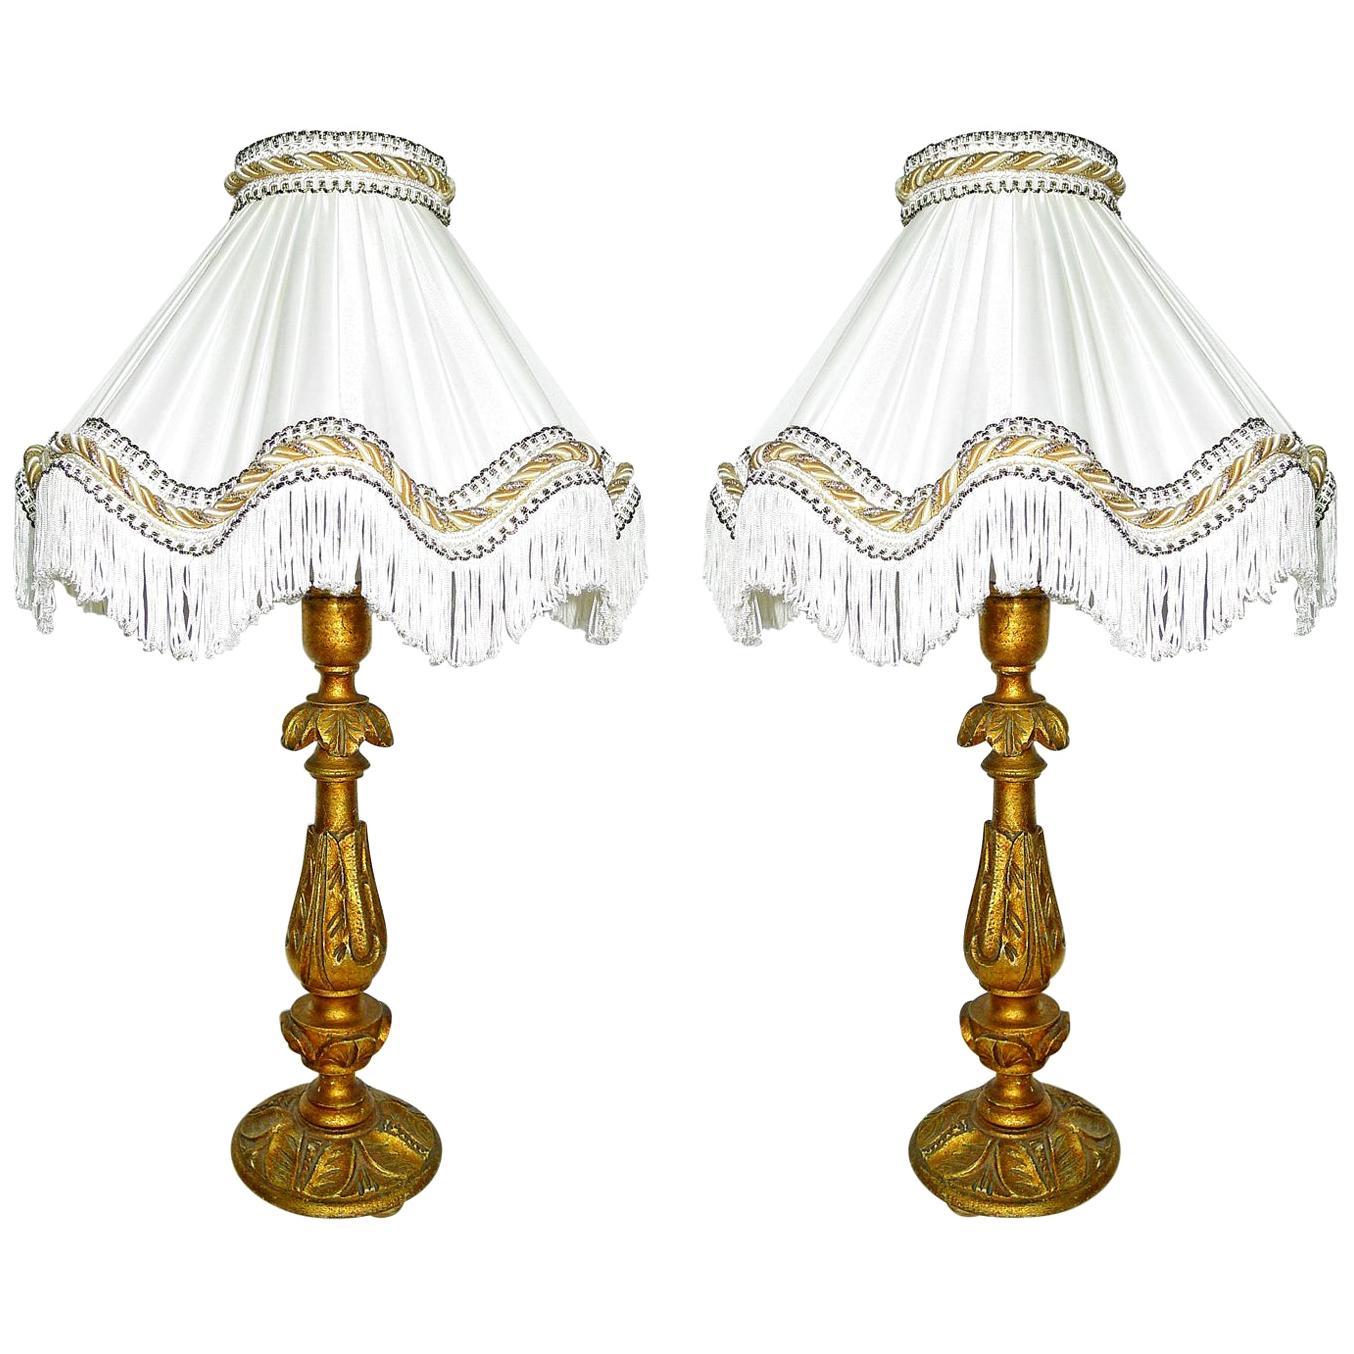 Pair of Italian Baroque Carved Giltwood Candlesticks Torchères Ivory Table Lamps